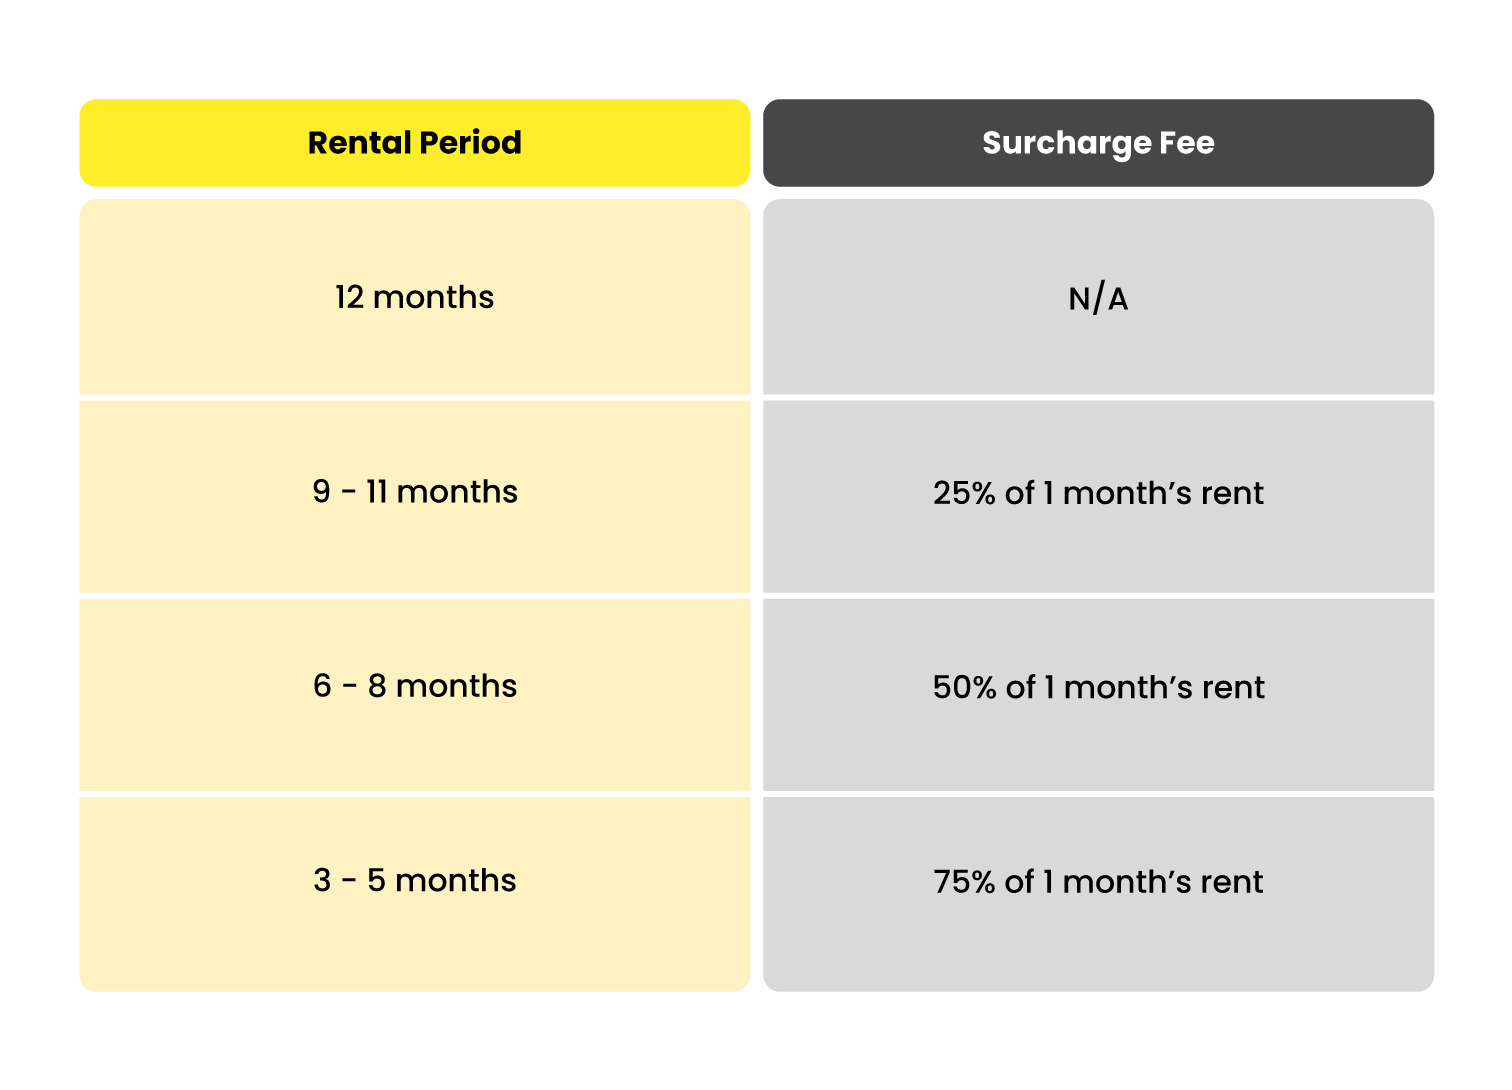 speedhome surcharge amount for short tenancy